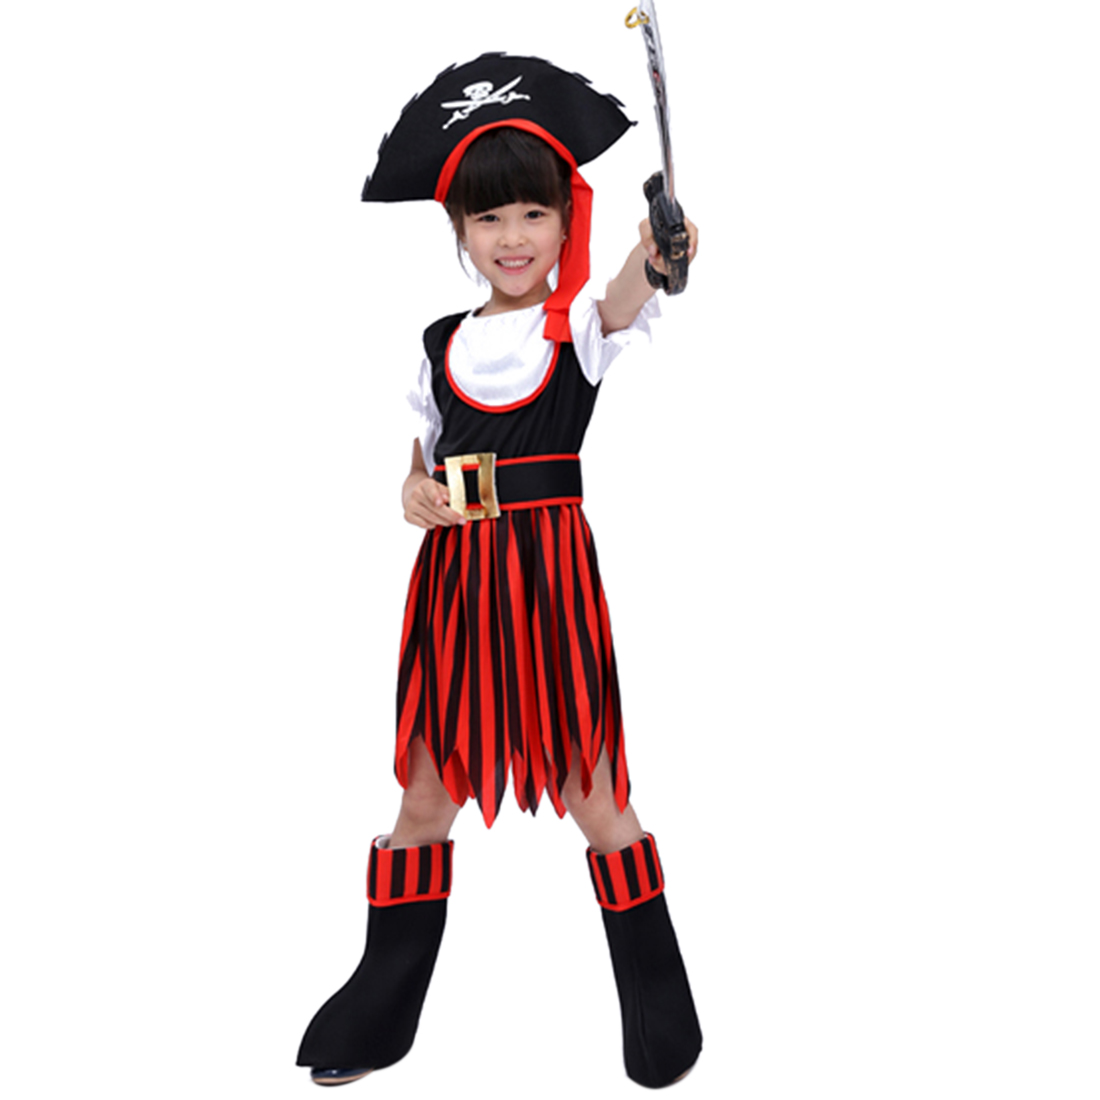 Halloween Pirate Cosplay Suit Children Pirate Girls Costume With Pirate Knife For 4-6 Years Old - M Size